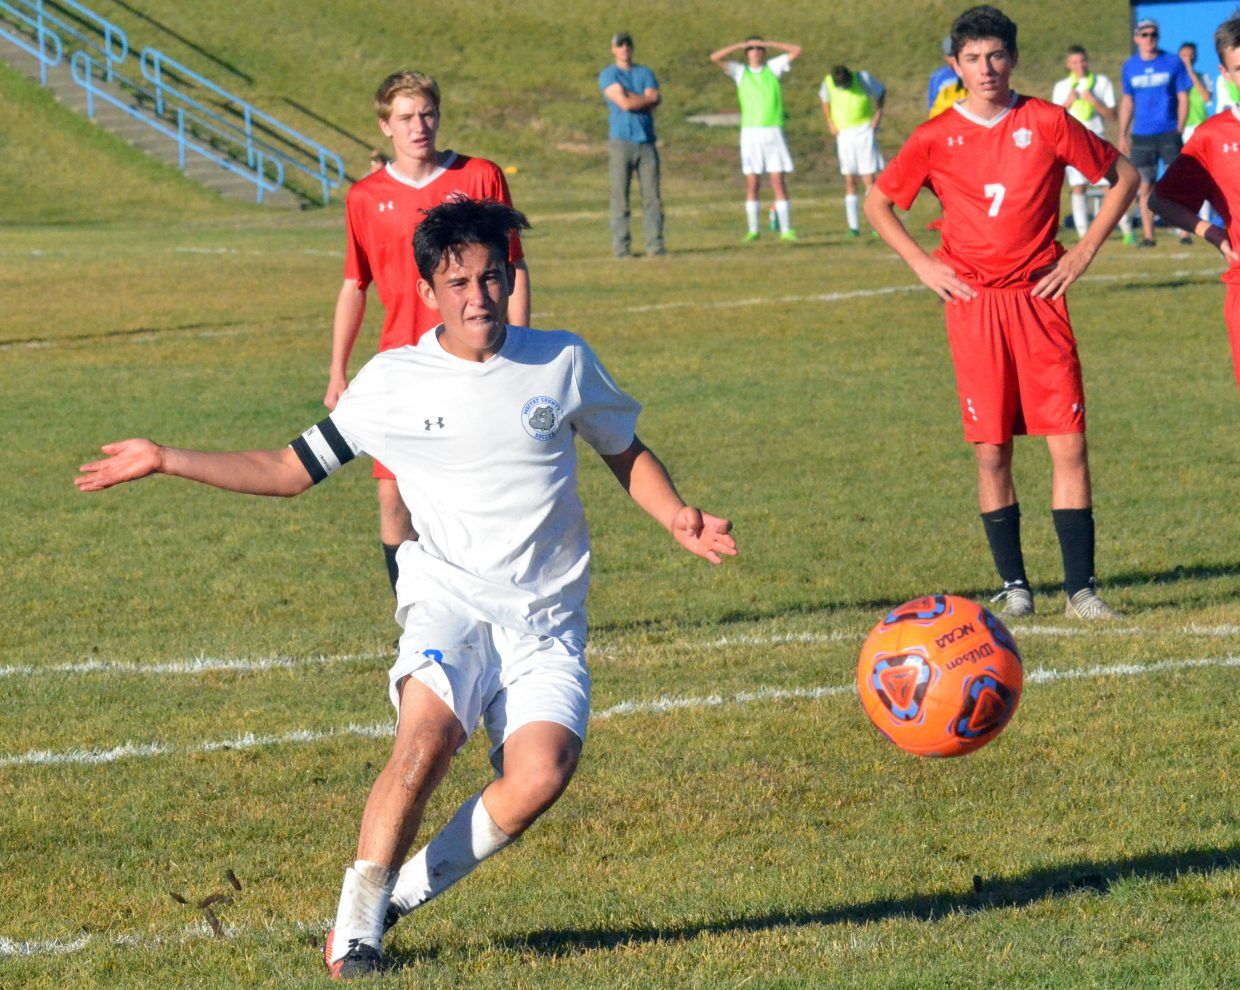 Moffat County High School senior Juan Loya lets loose a penalty kick against Steamboat. Loya scored both Bulldog goals in a 3-2 defeat to the Sailors.